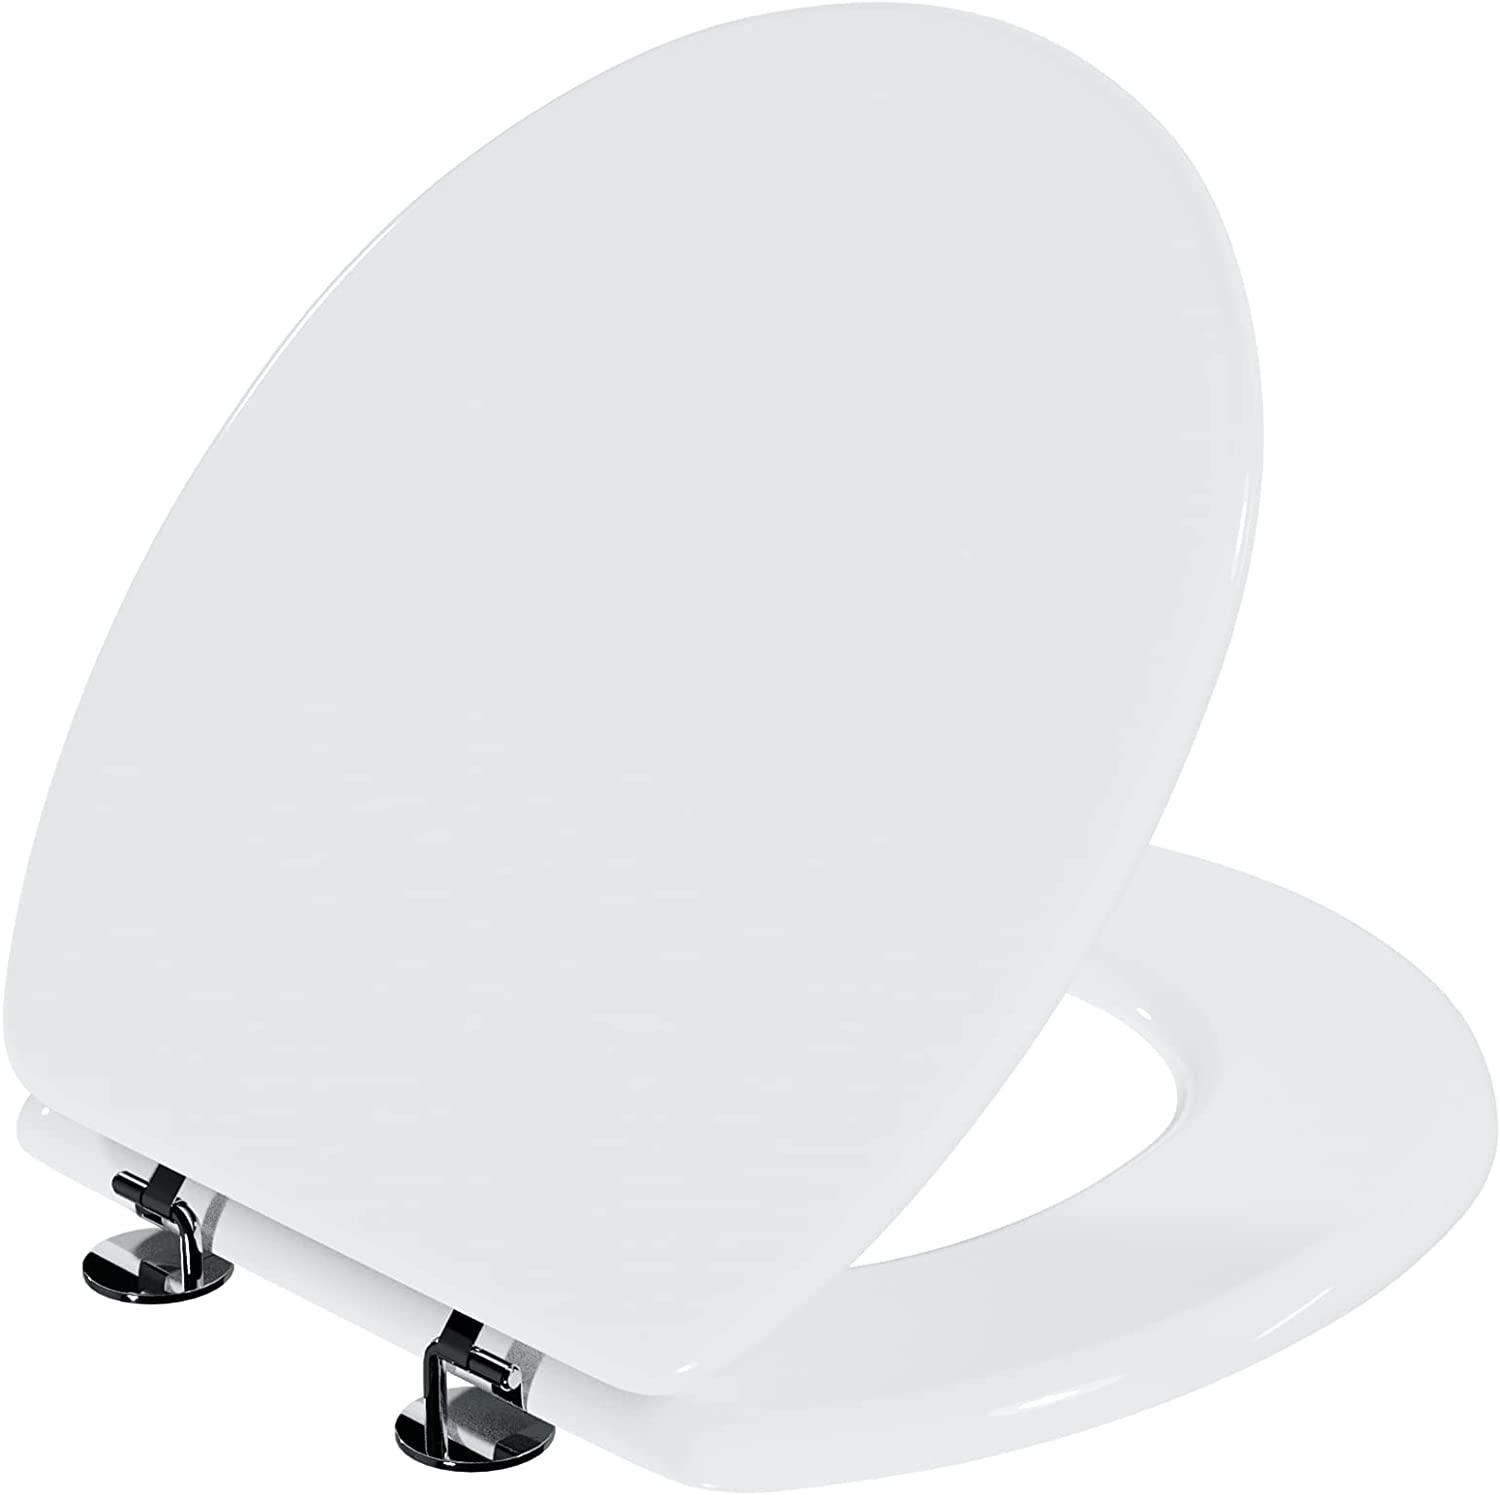 ANZZI XL Comfort Round Oversized Toilet Seat with Cover   Durable High Grade Plastic and Stainless Steel Hinges 800 Pound Capacity Closed Toilet Seat in White   T1-AZ301WH